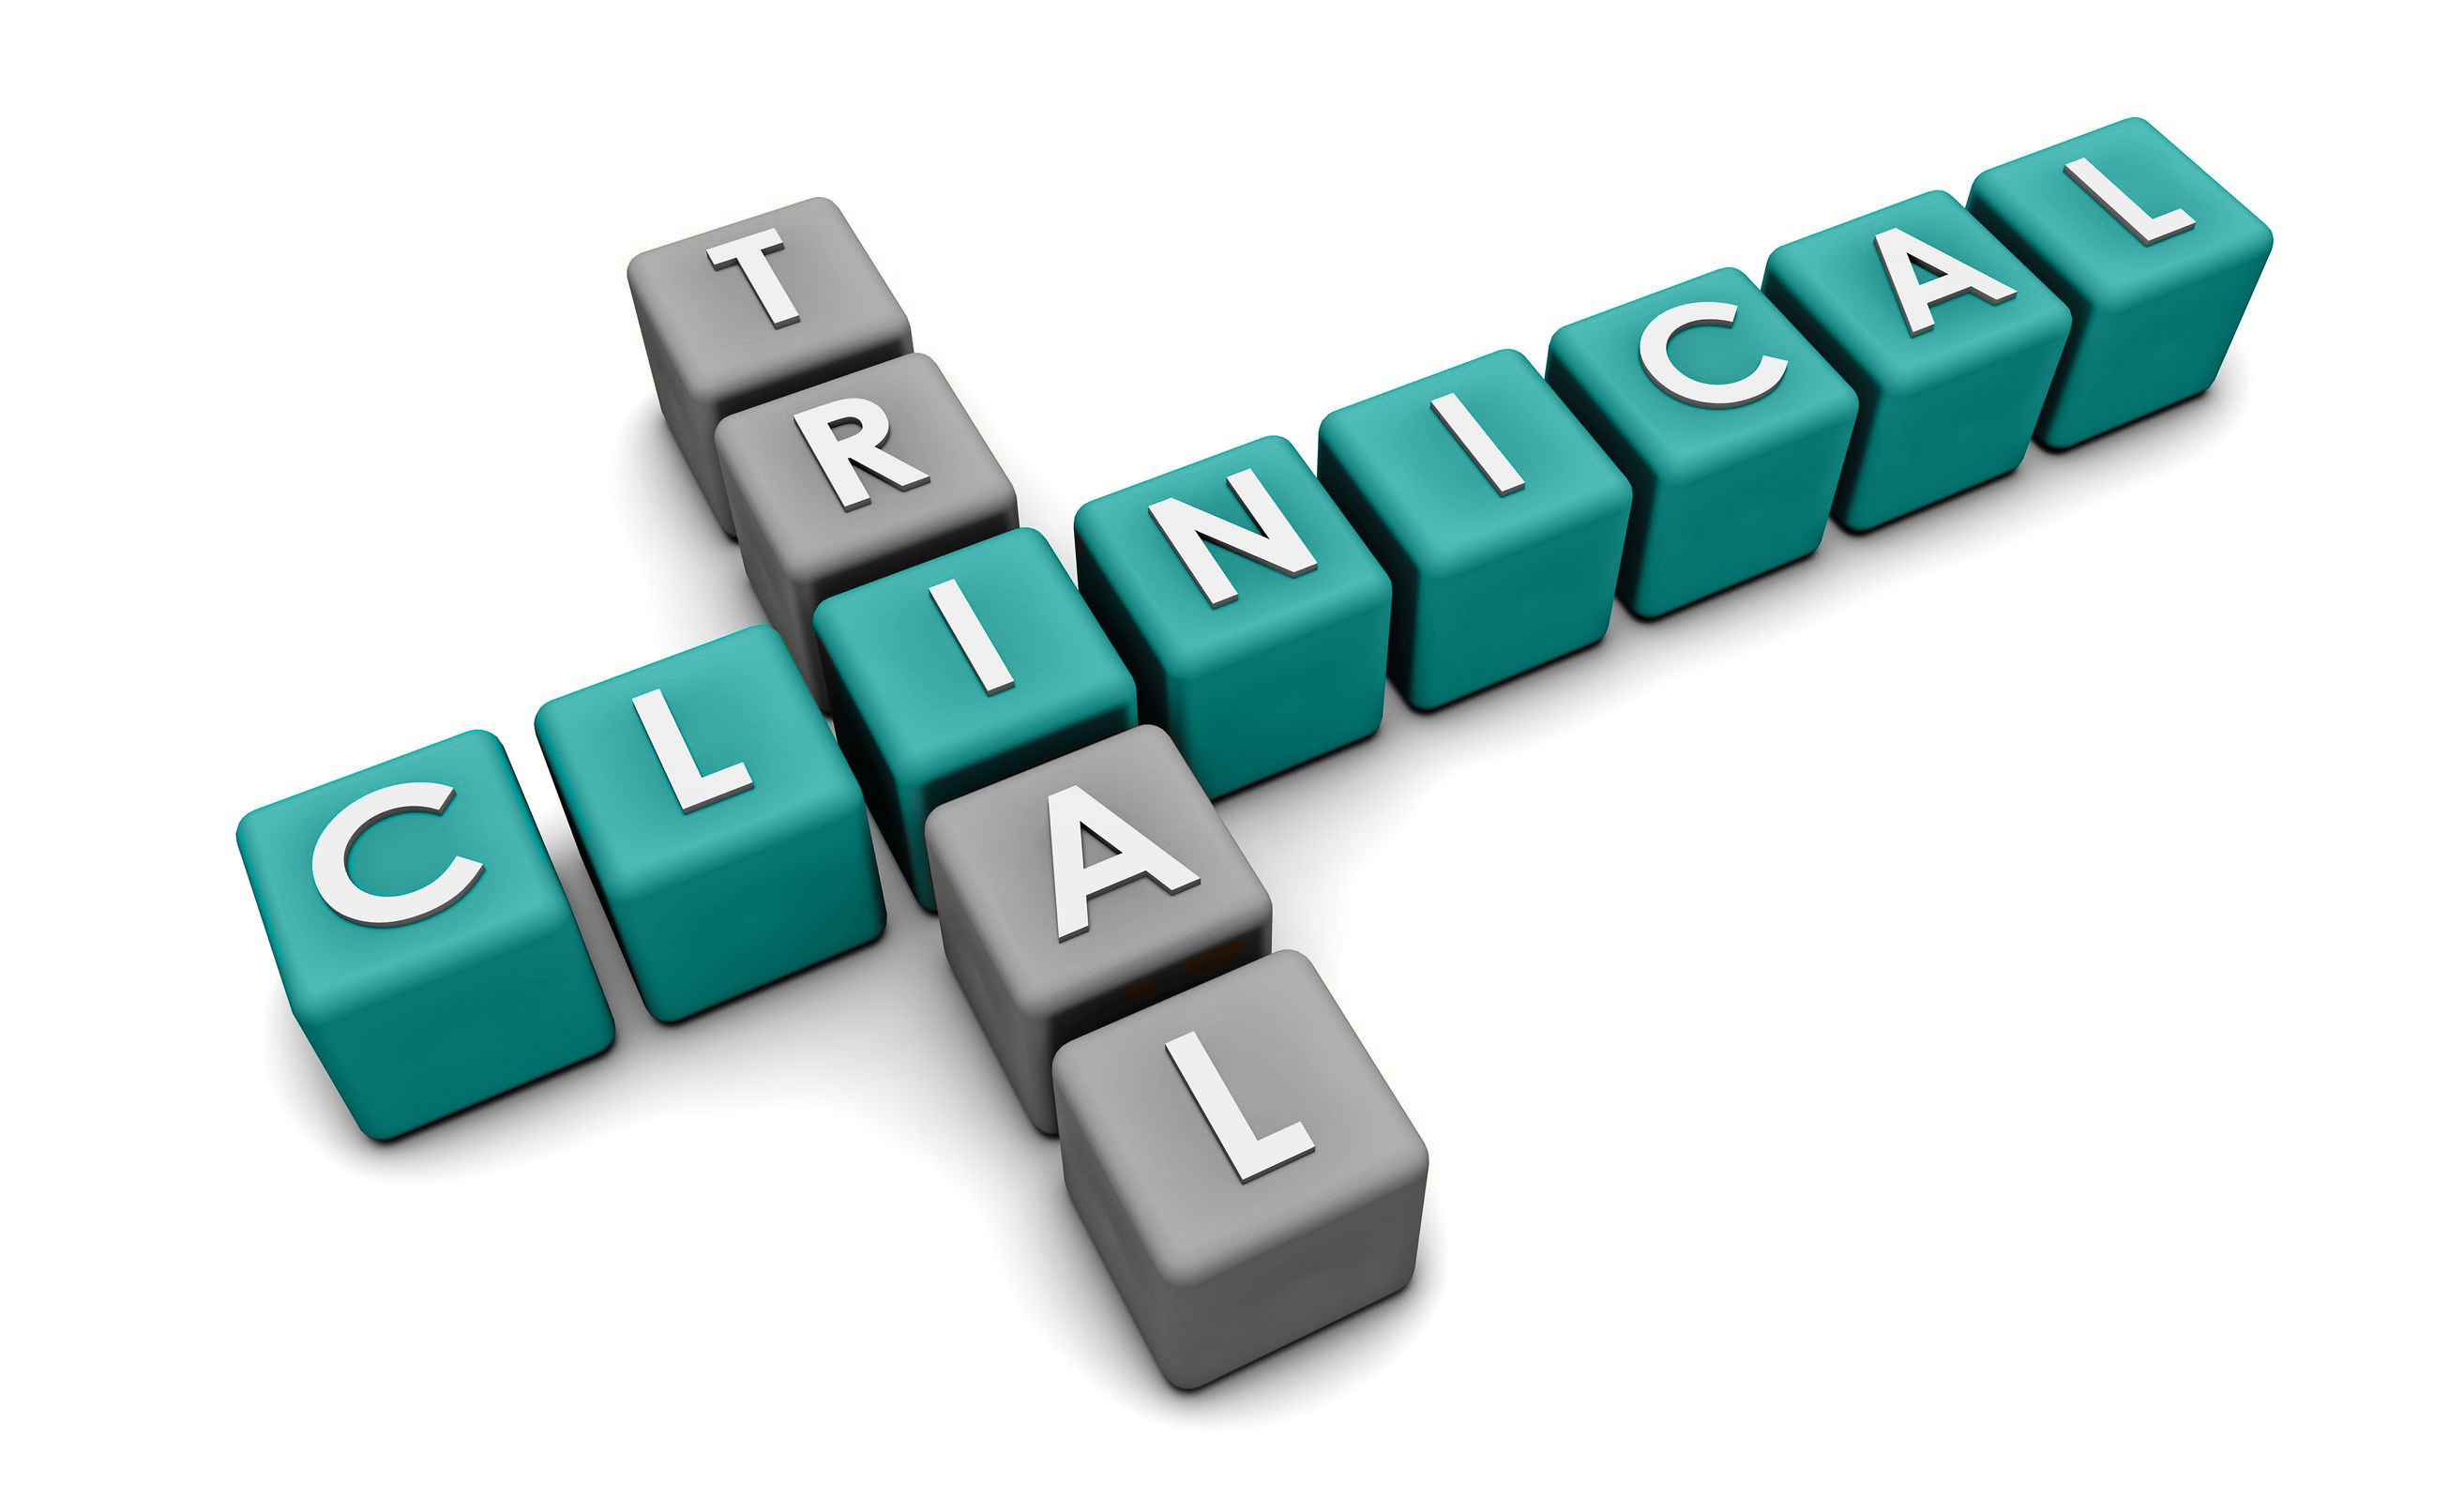 canadas-clinical-trials-moving-start-up-relocate-to-canada-perspective